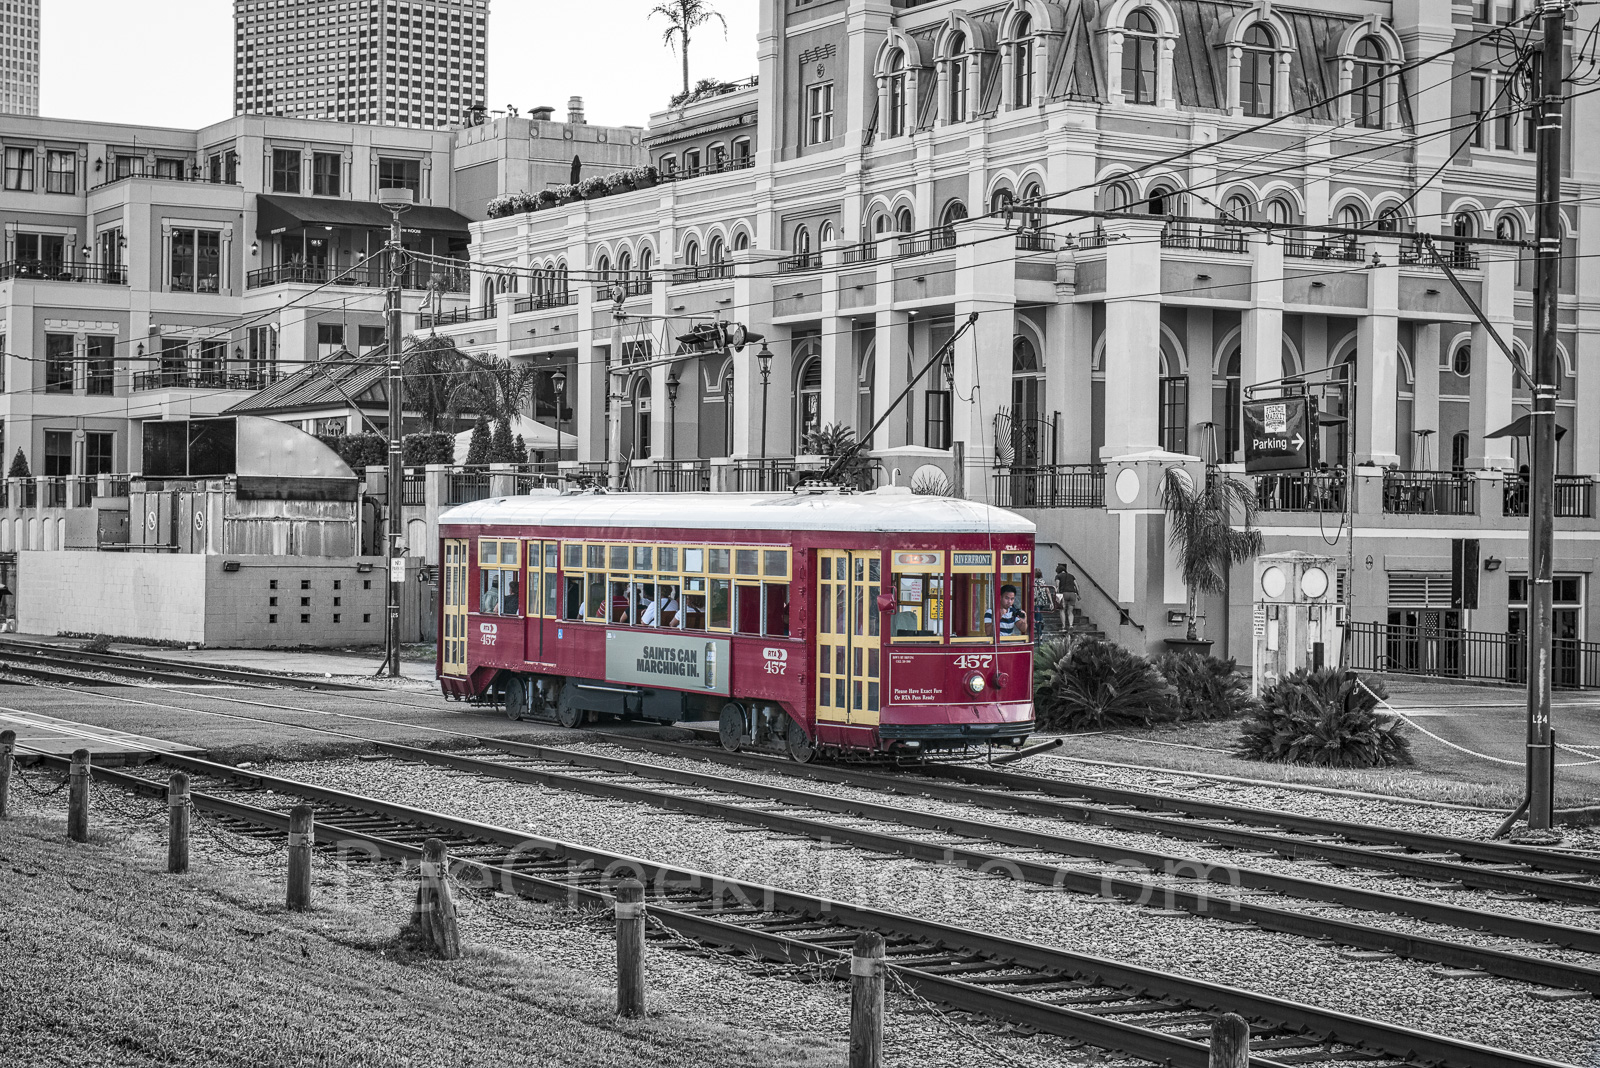 New Orleands, red, street car, Jackson Brewery, transist, Jackson Brewery, black and white, bw,, photo